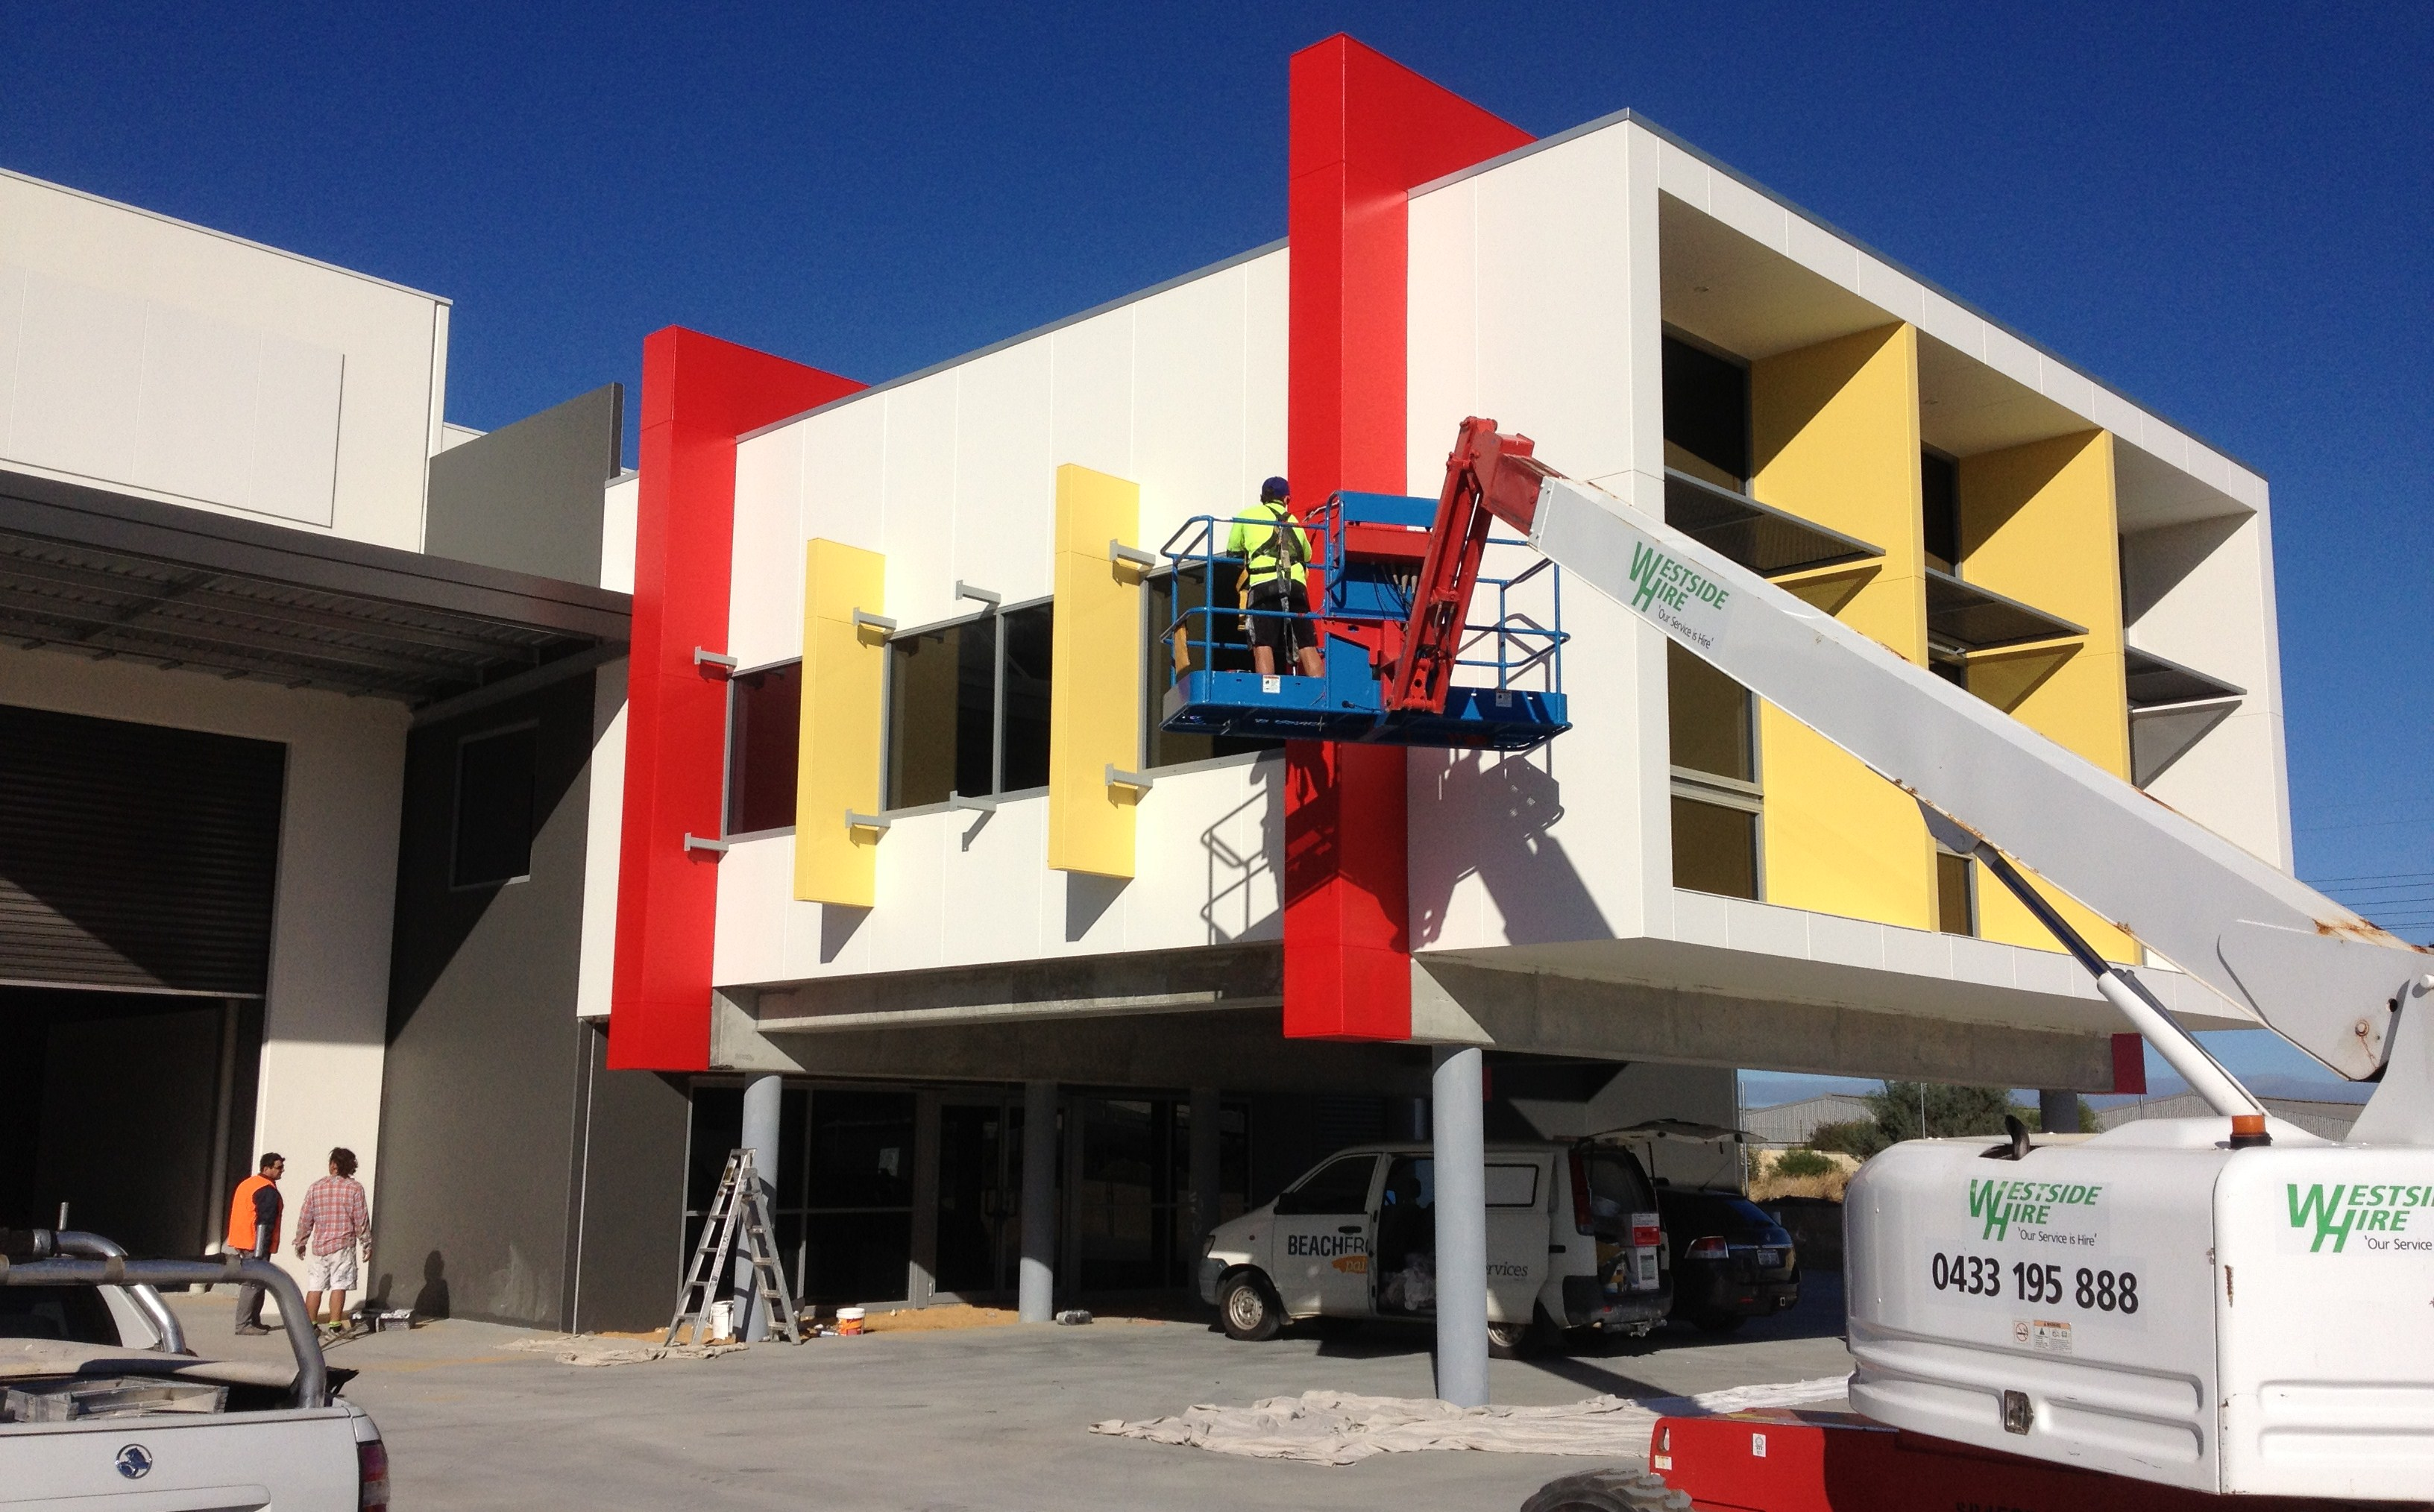 f37f641c6d Exterior shot of man painting a commercial building in vibrant colours